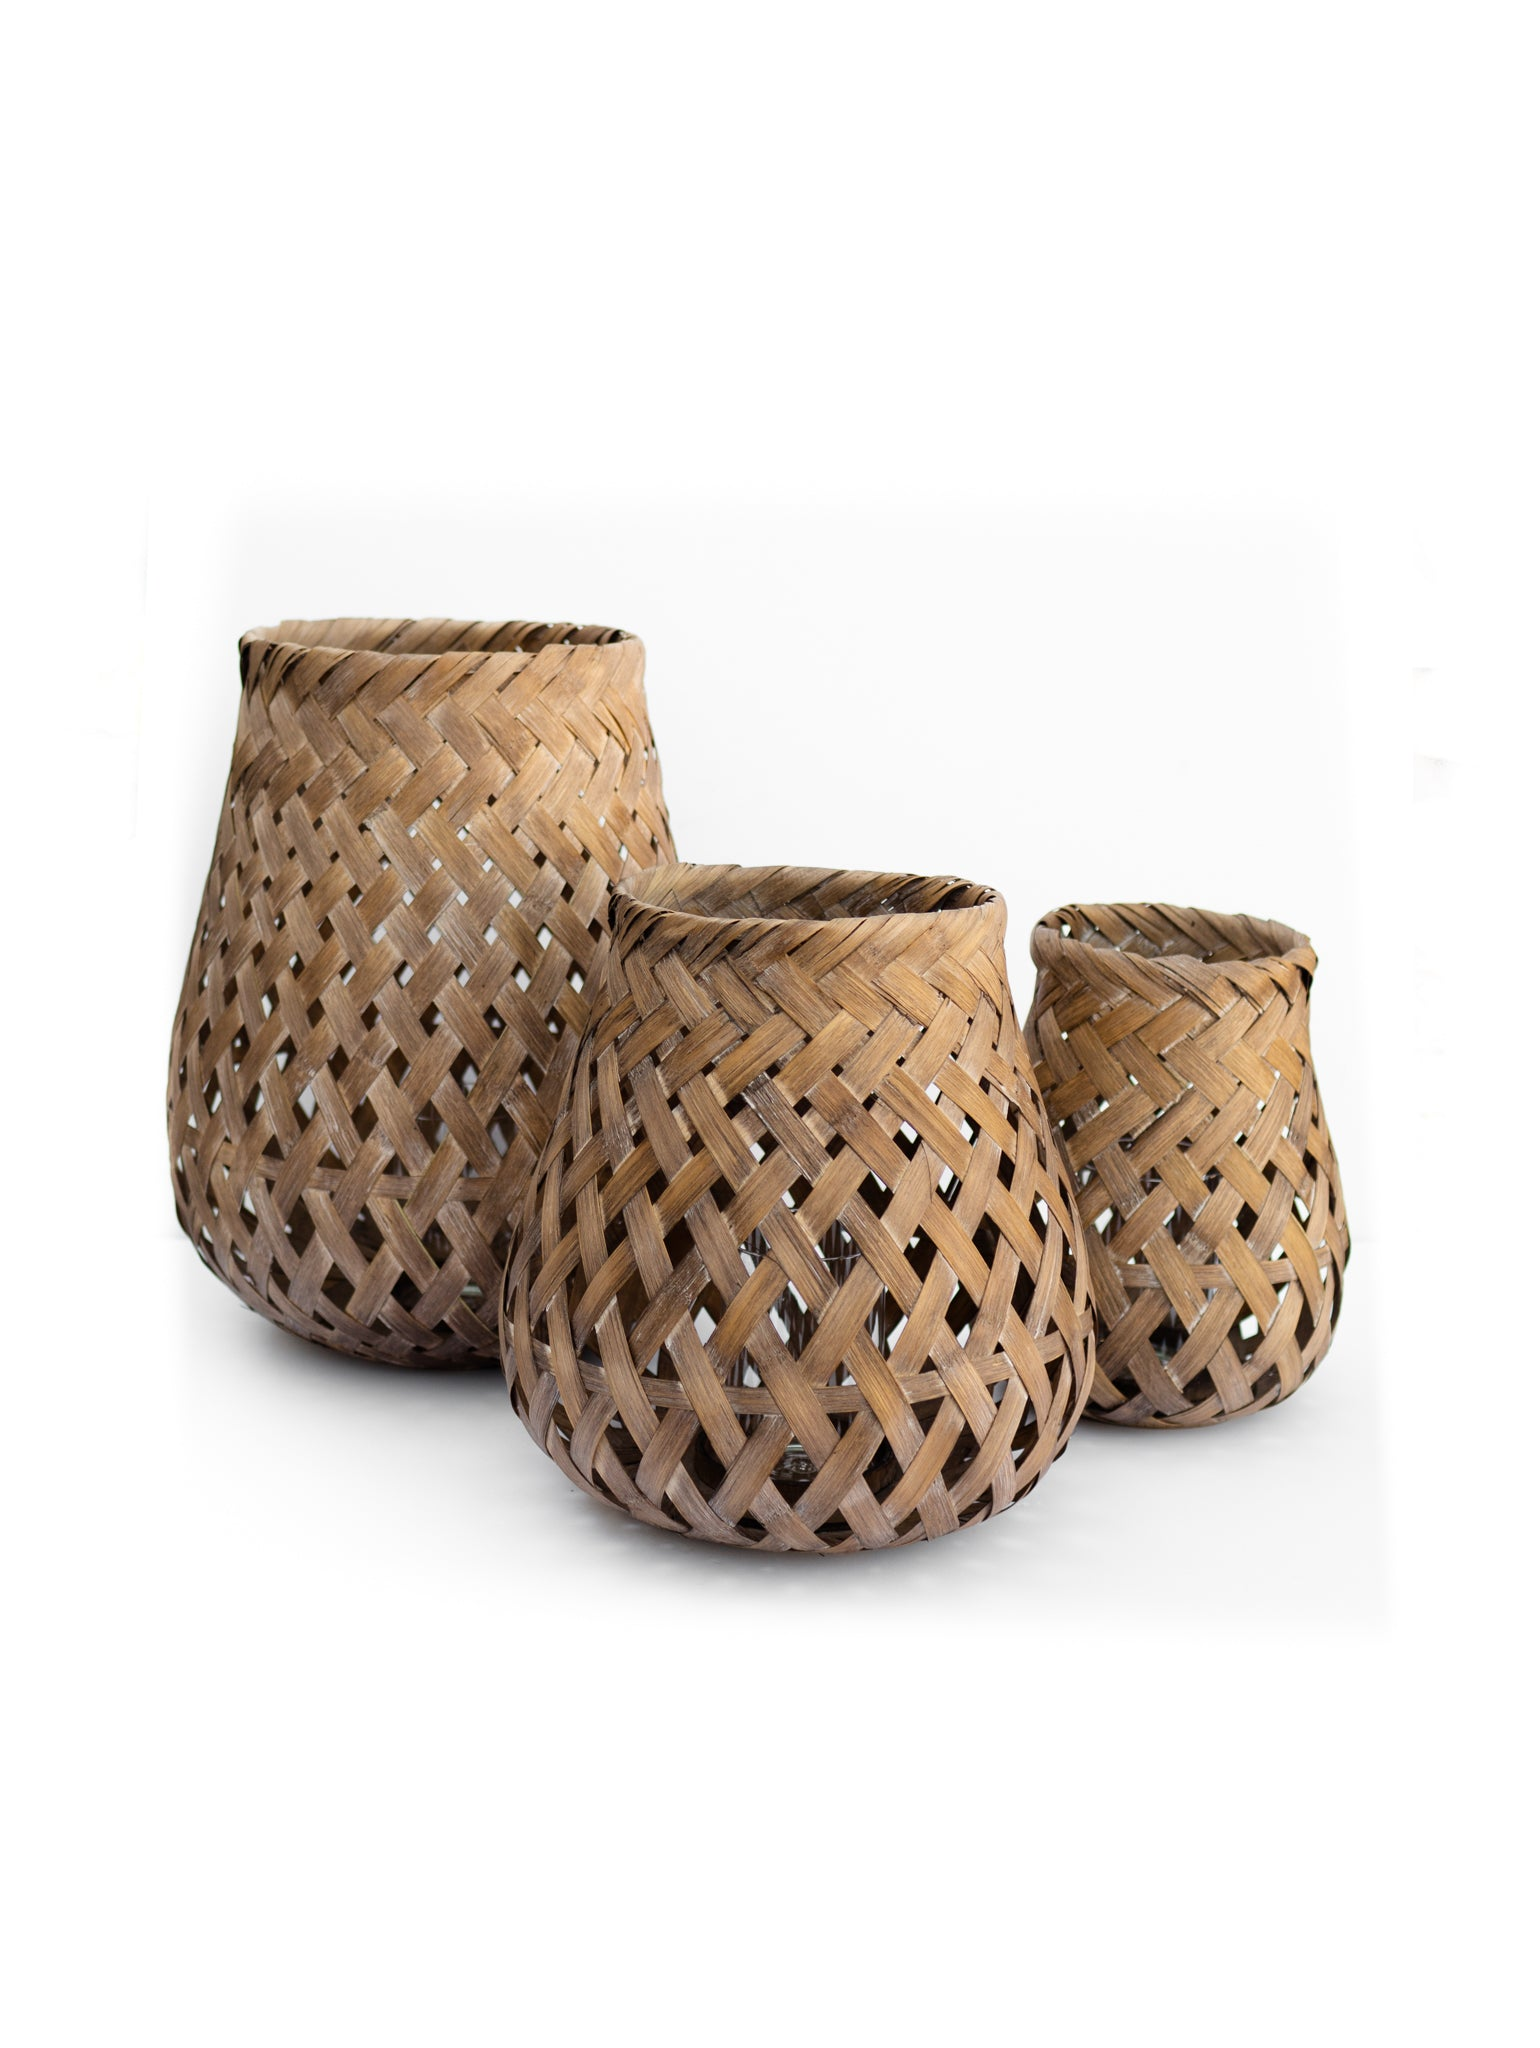 Woven Bamboo Candle Basket